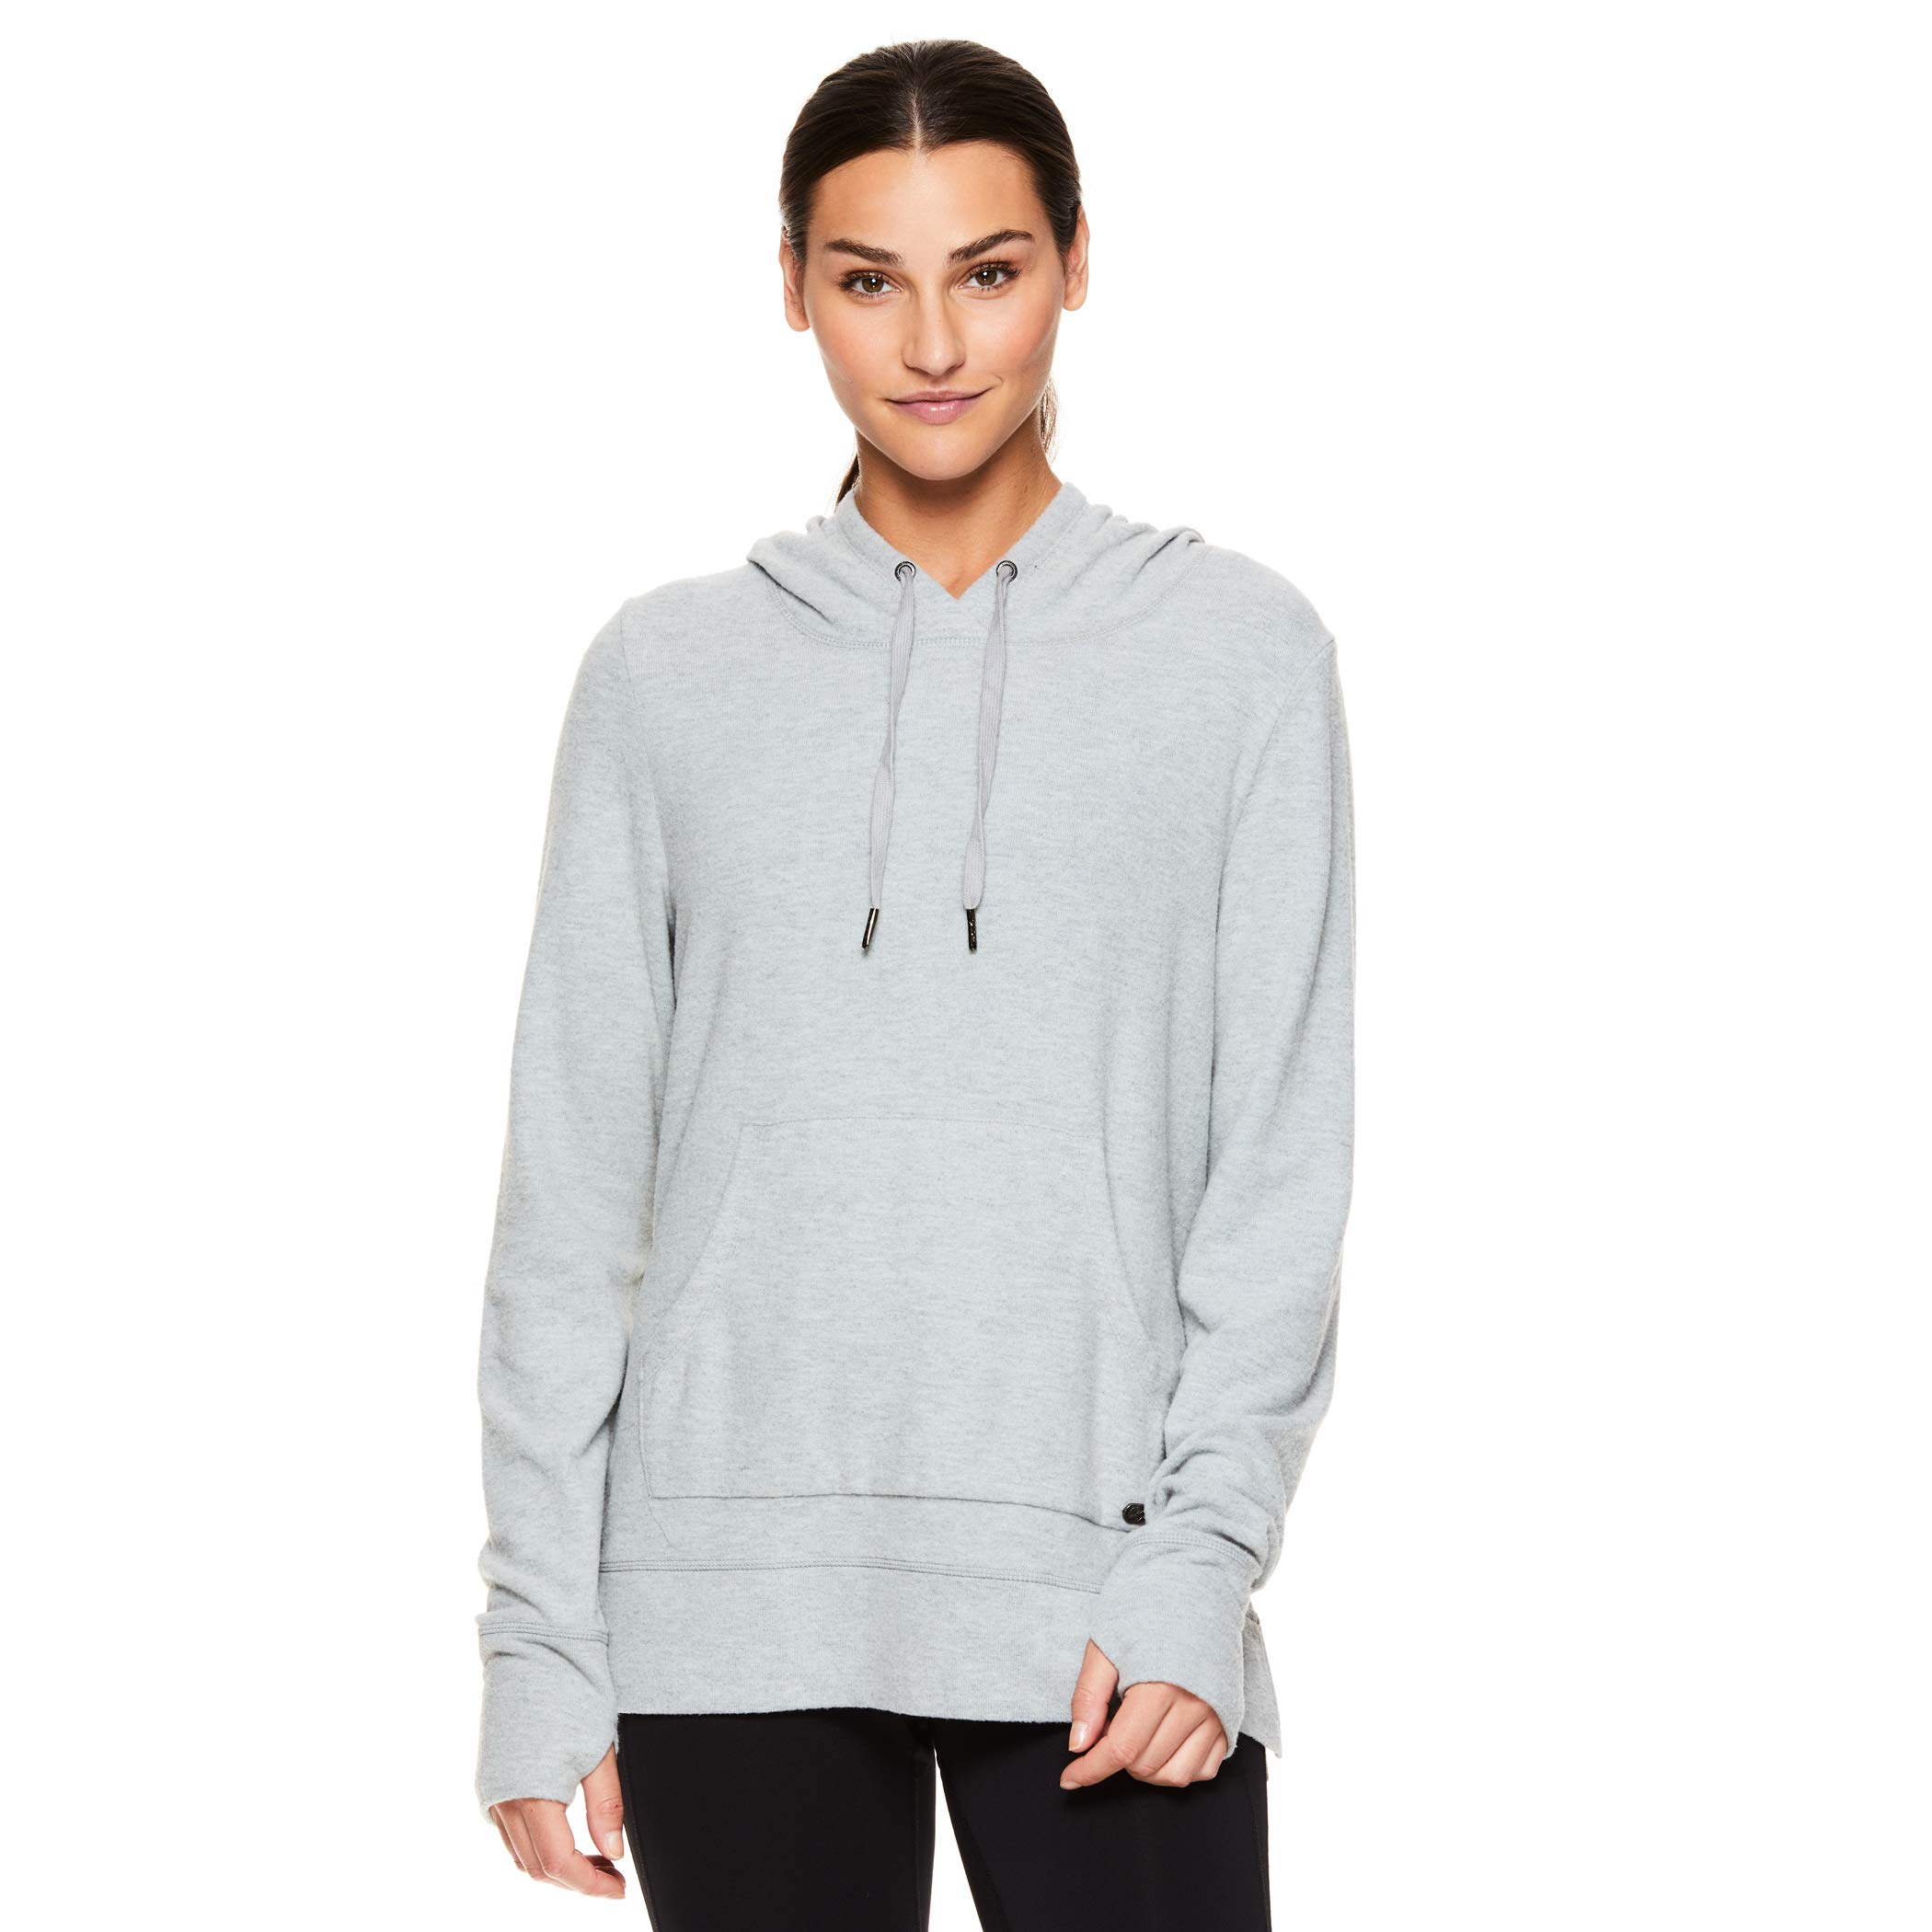 Gaiam Women's Lightweight Pullover Hoodie - Activewear Workout & Yoga Sweater - Elle Cozy Grey Heather, X-Large by Gaiam